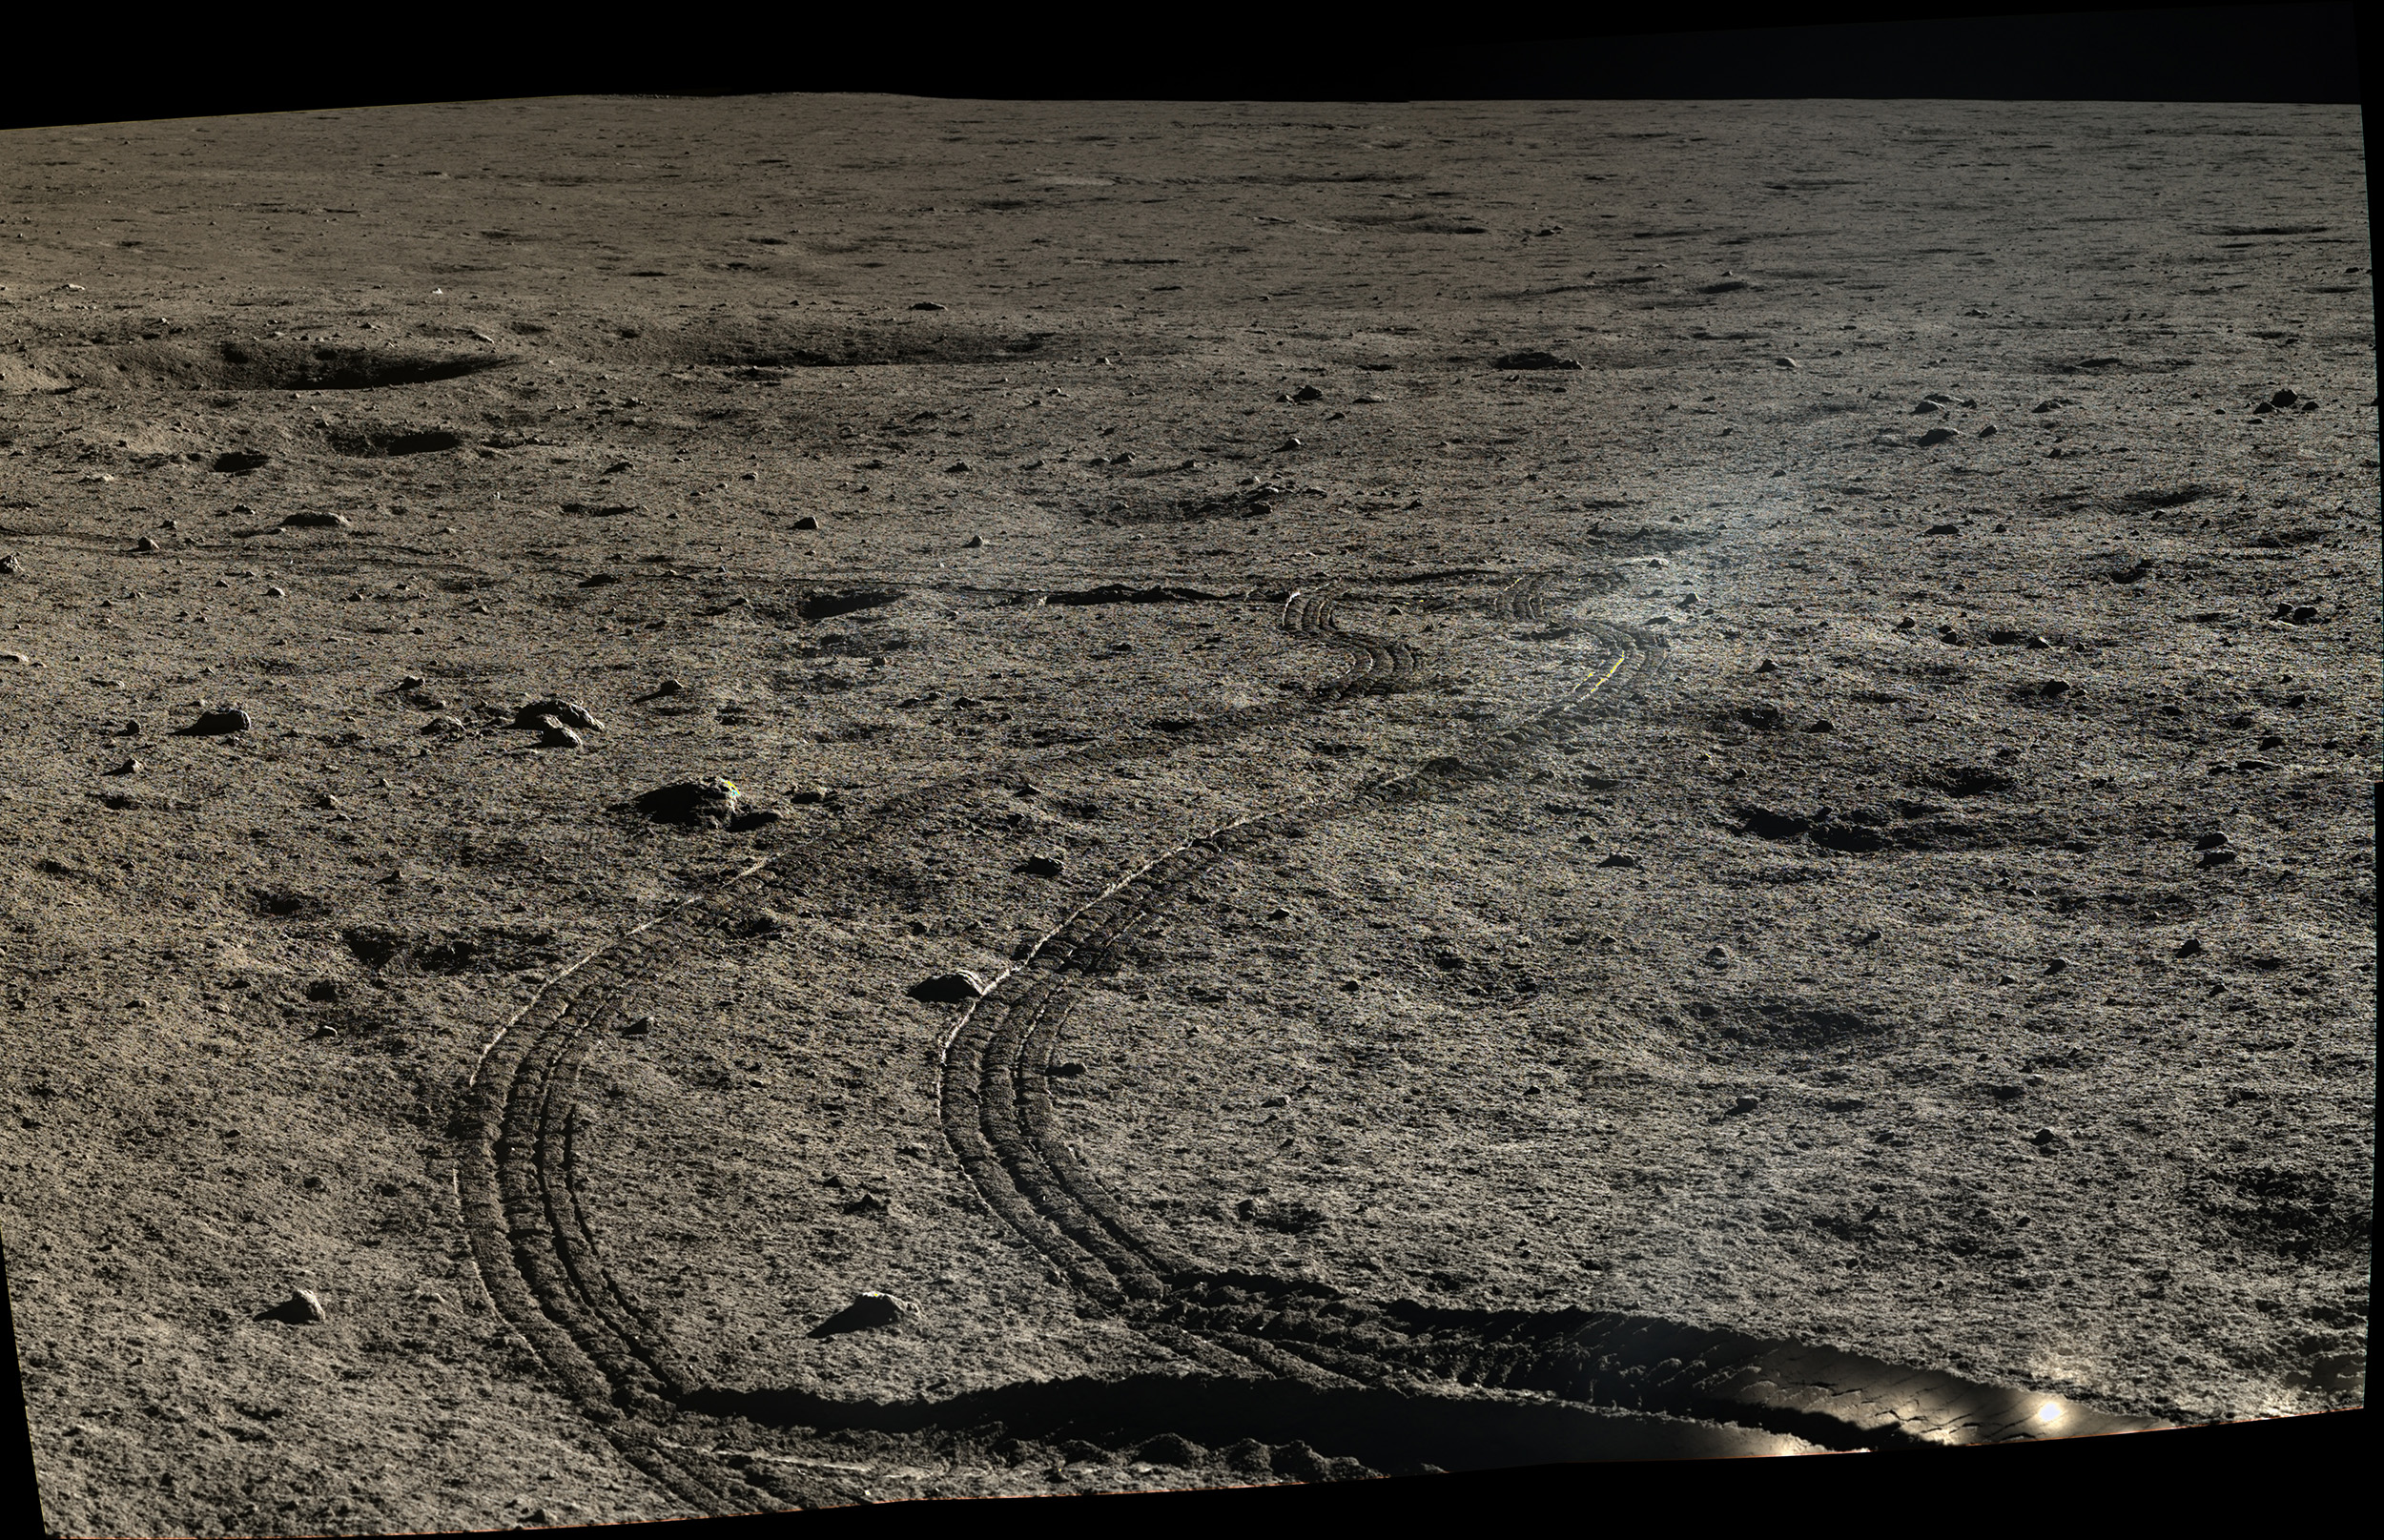 Yutu's wheels tracks in the lunar soil. The images for this mosaic were taken on Jan. 12, 2014.